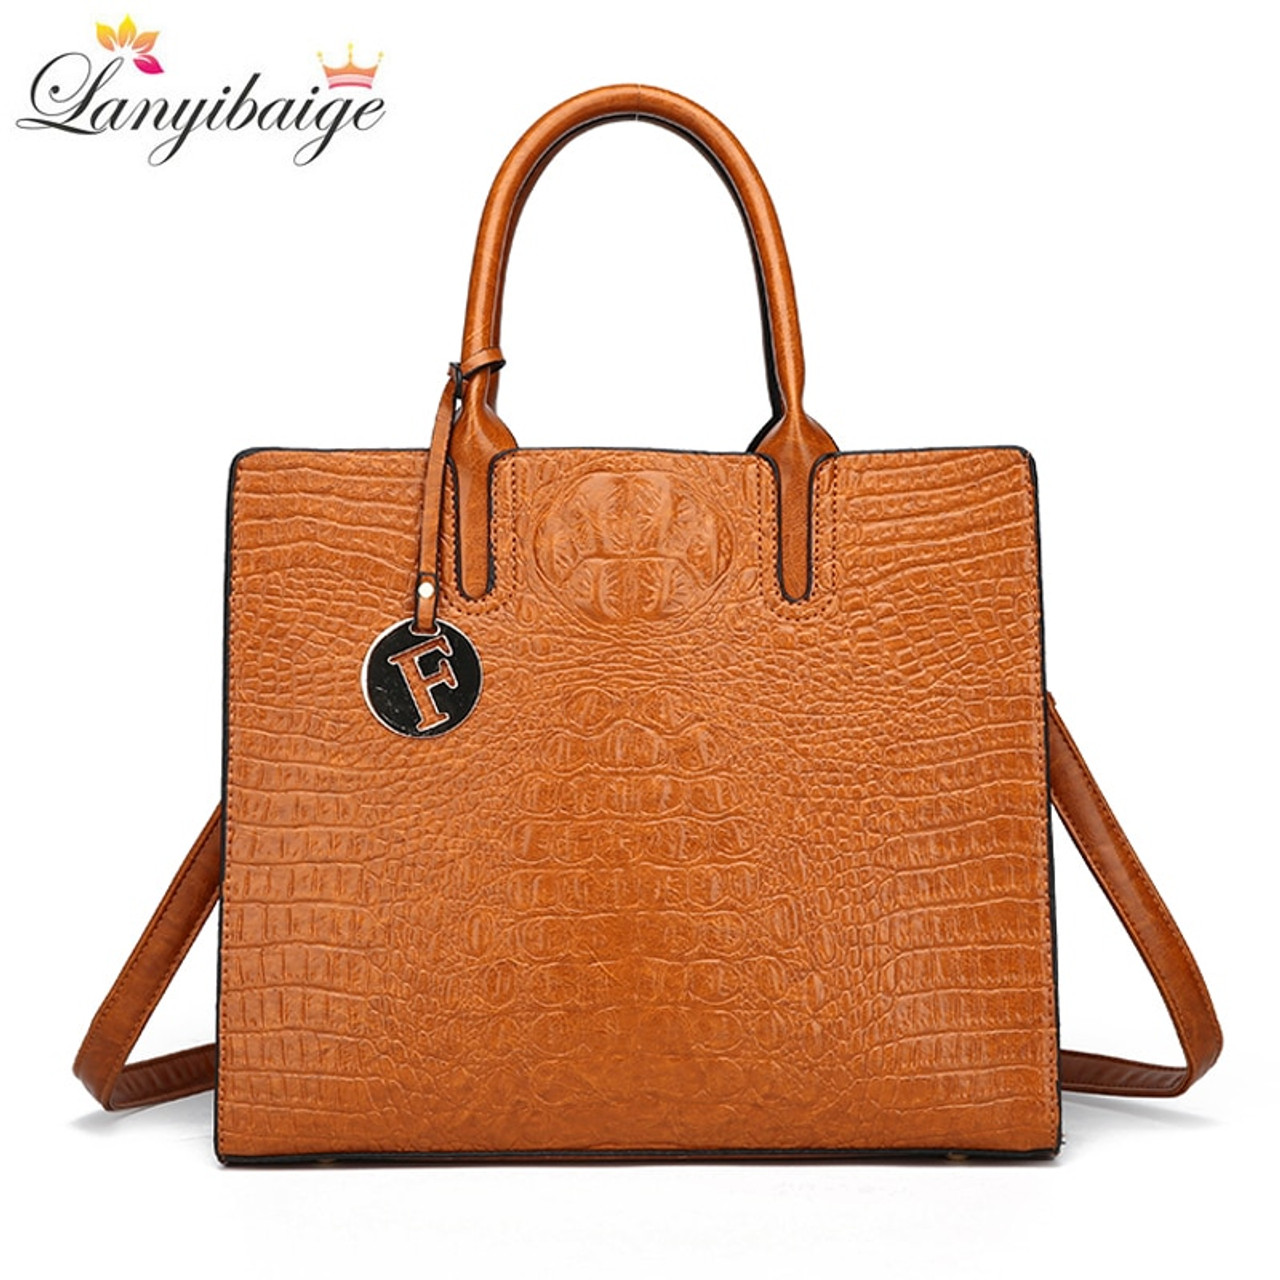 LANYIBAIGE 2018 Women Crocodile Pattern Handbag Designer Leather Large  Shoulder Bag Female Fashion Messenger Bag Totes Bolsas - OnshopDeals.Com 292b7366f127d